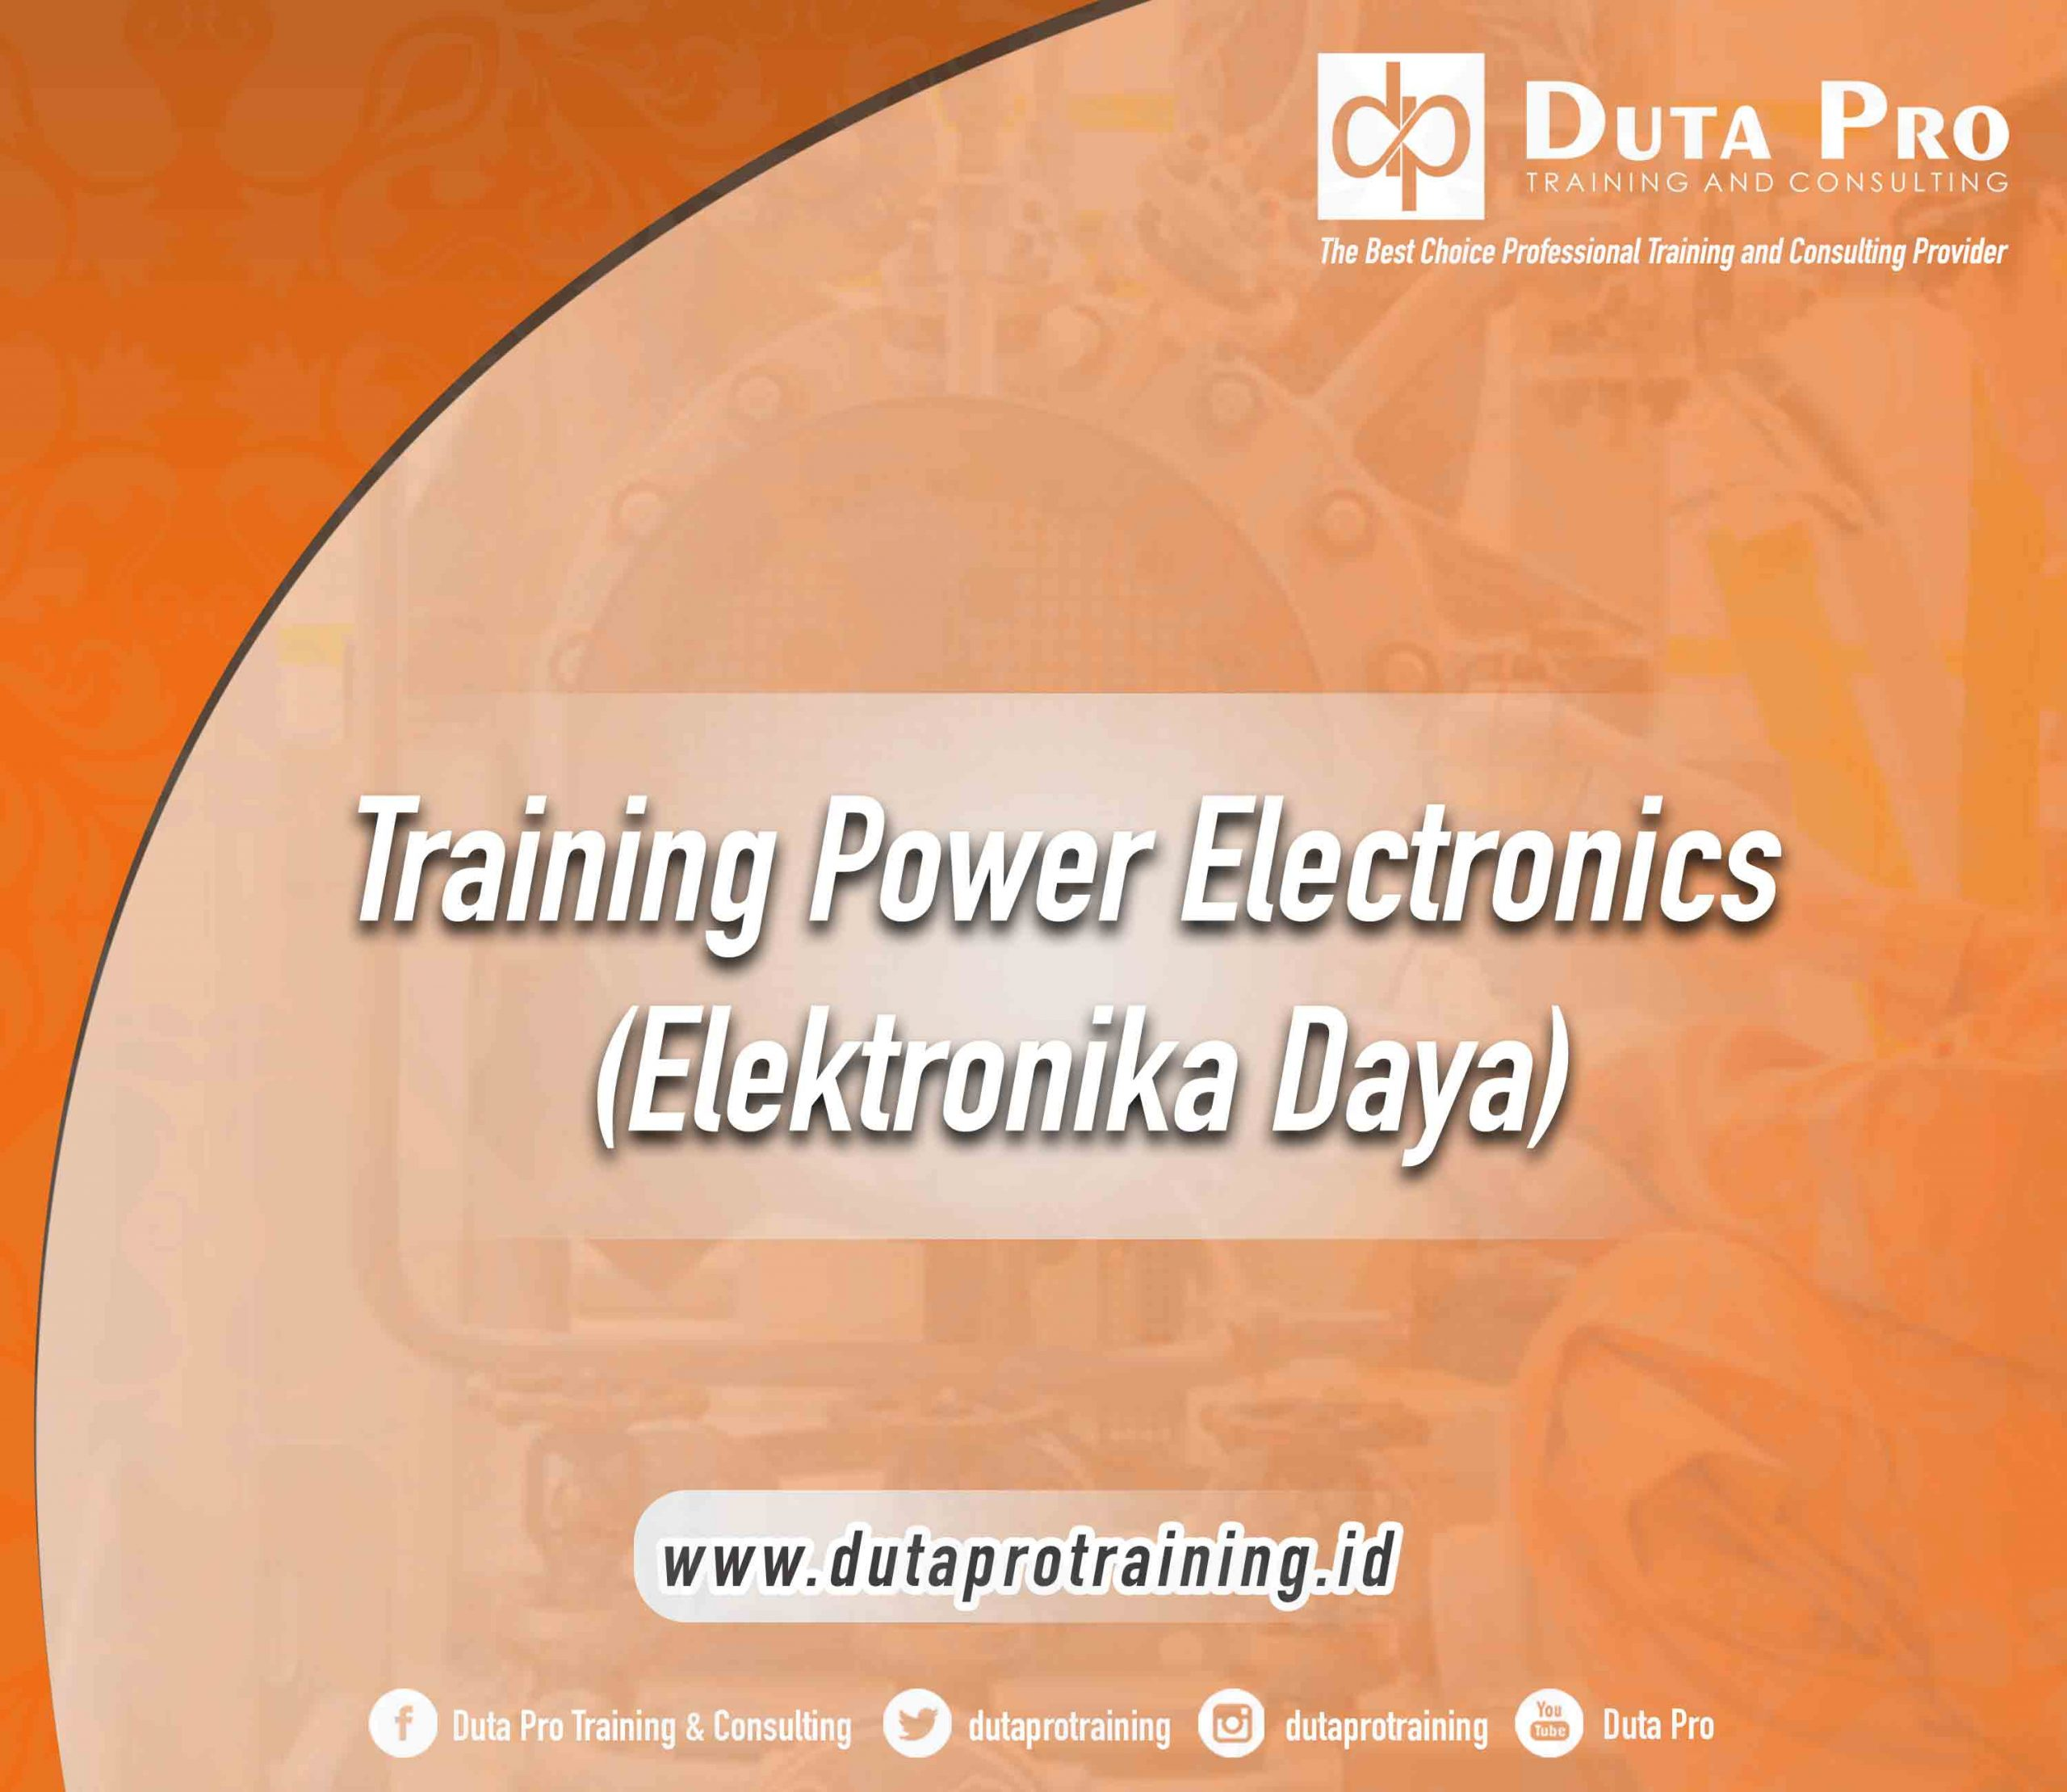 Training Power Electronics (Elektronika Daya)